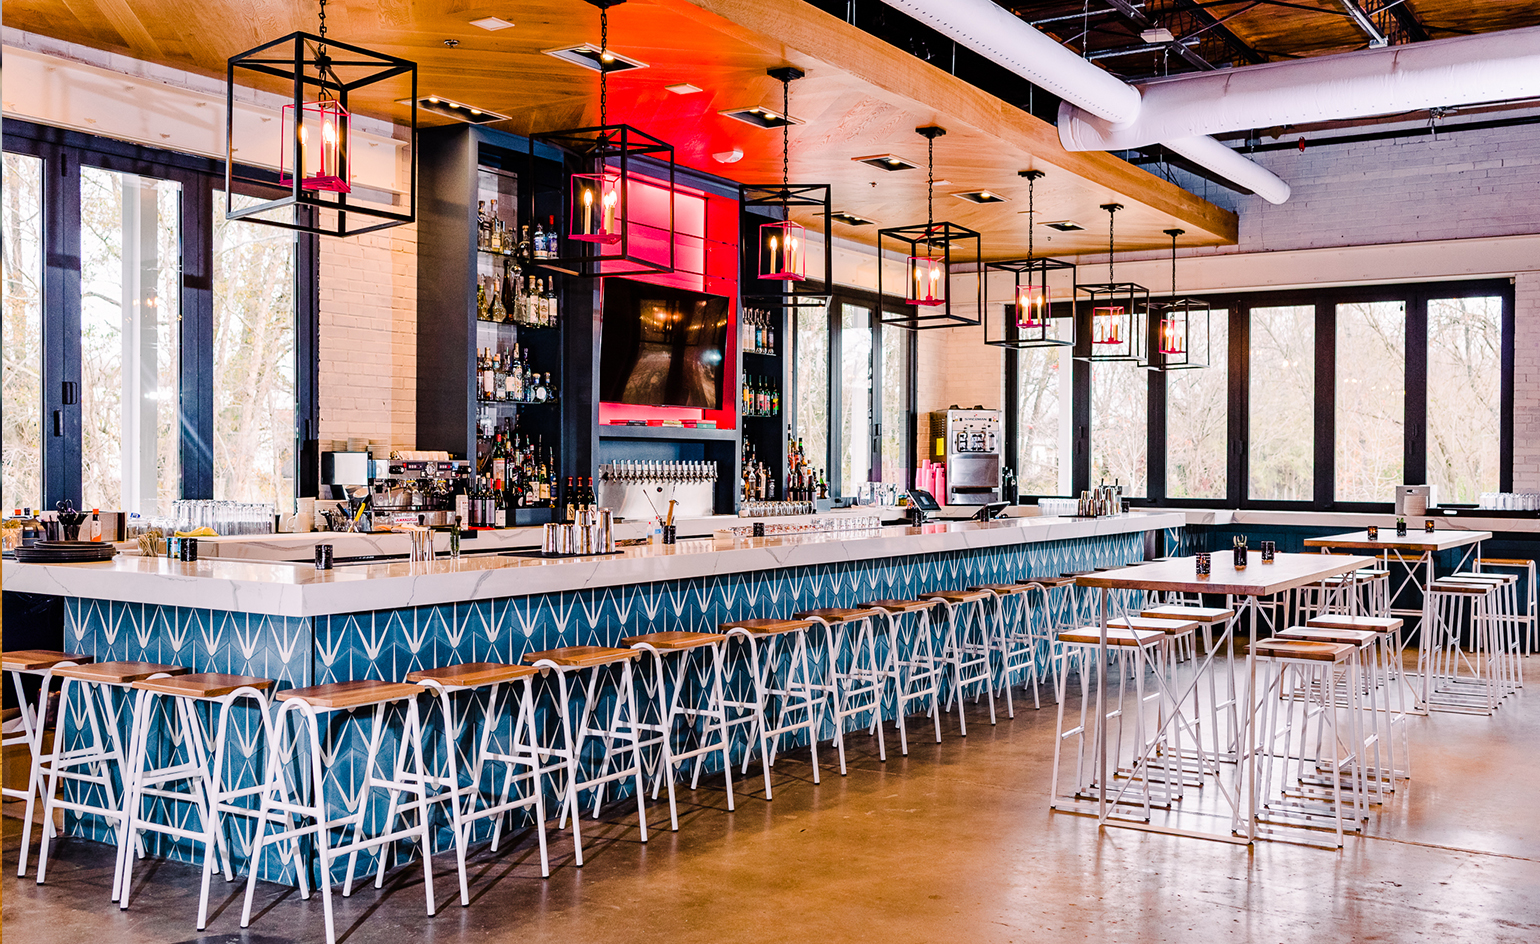 Modern barstools lined up against graphic cement tiles in a Mexican themed restaurant